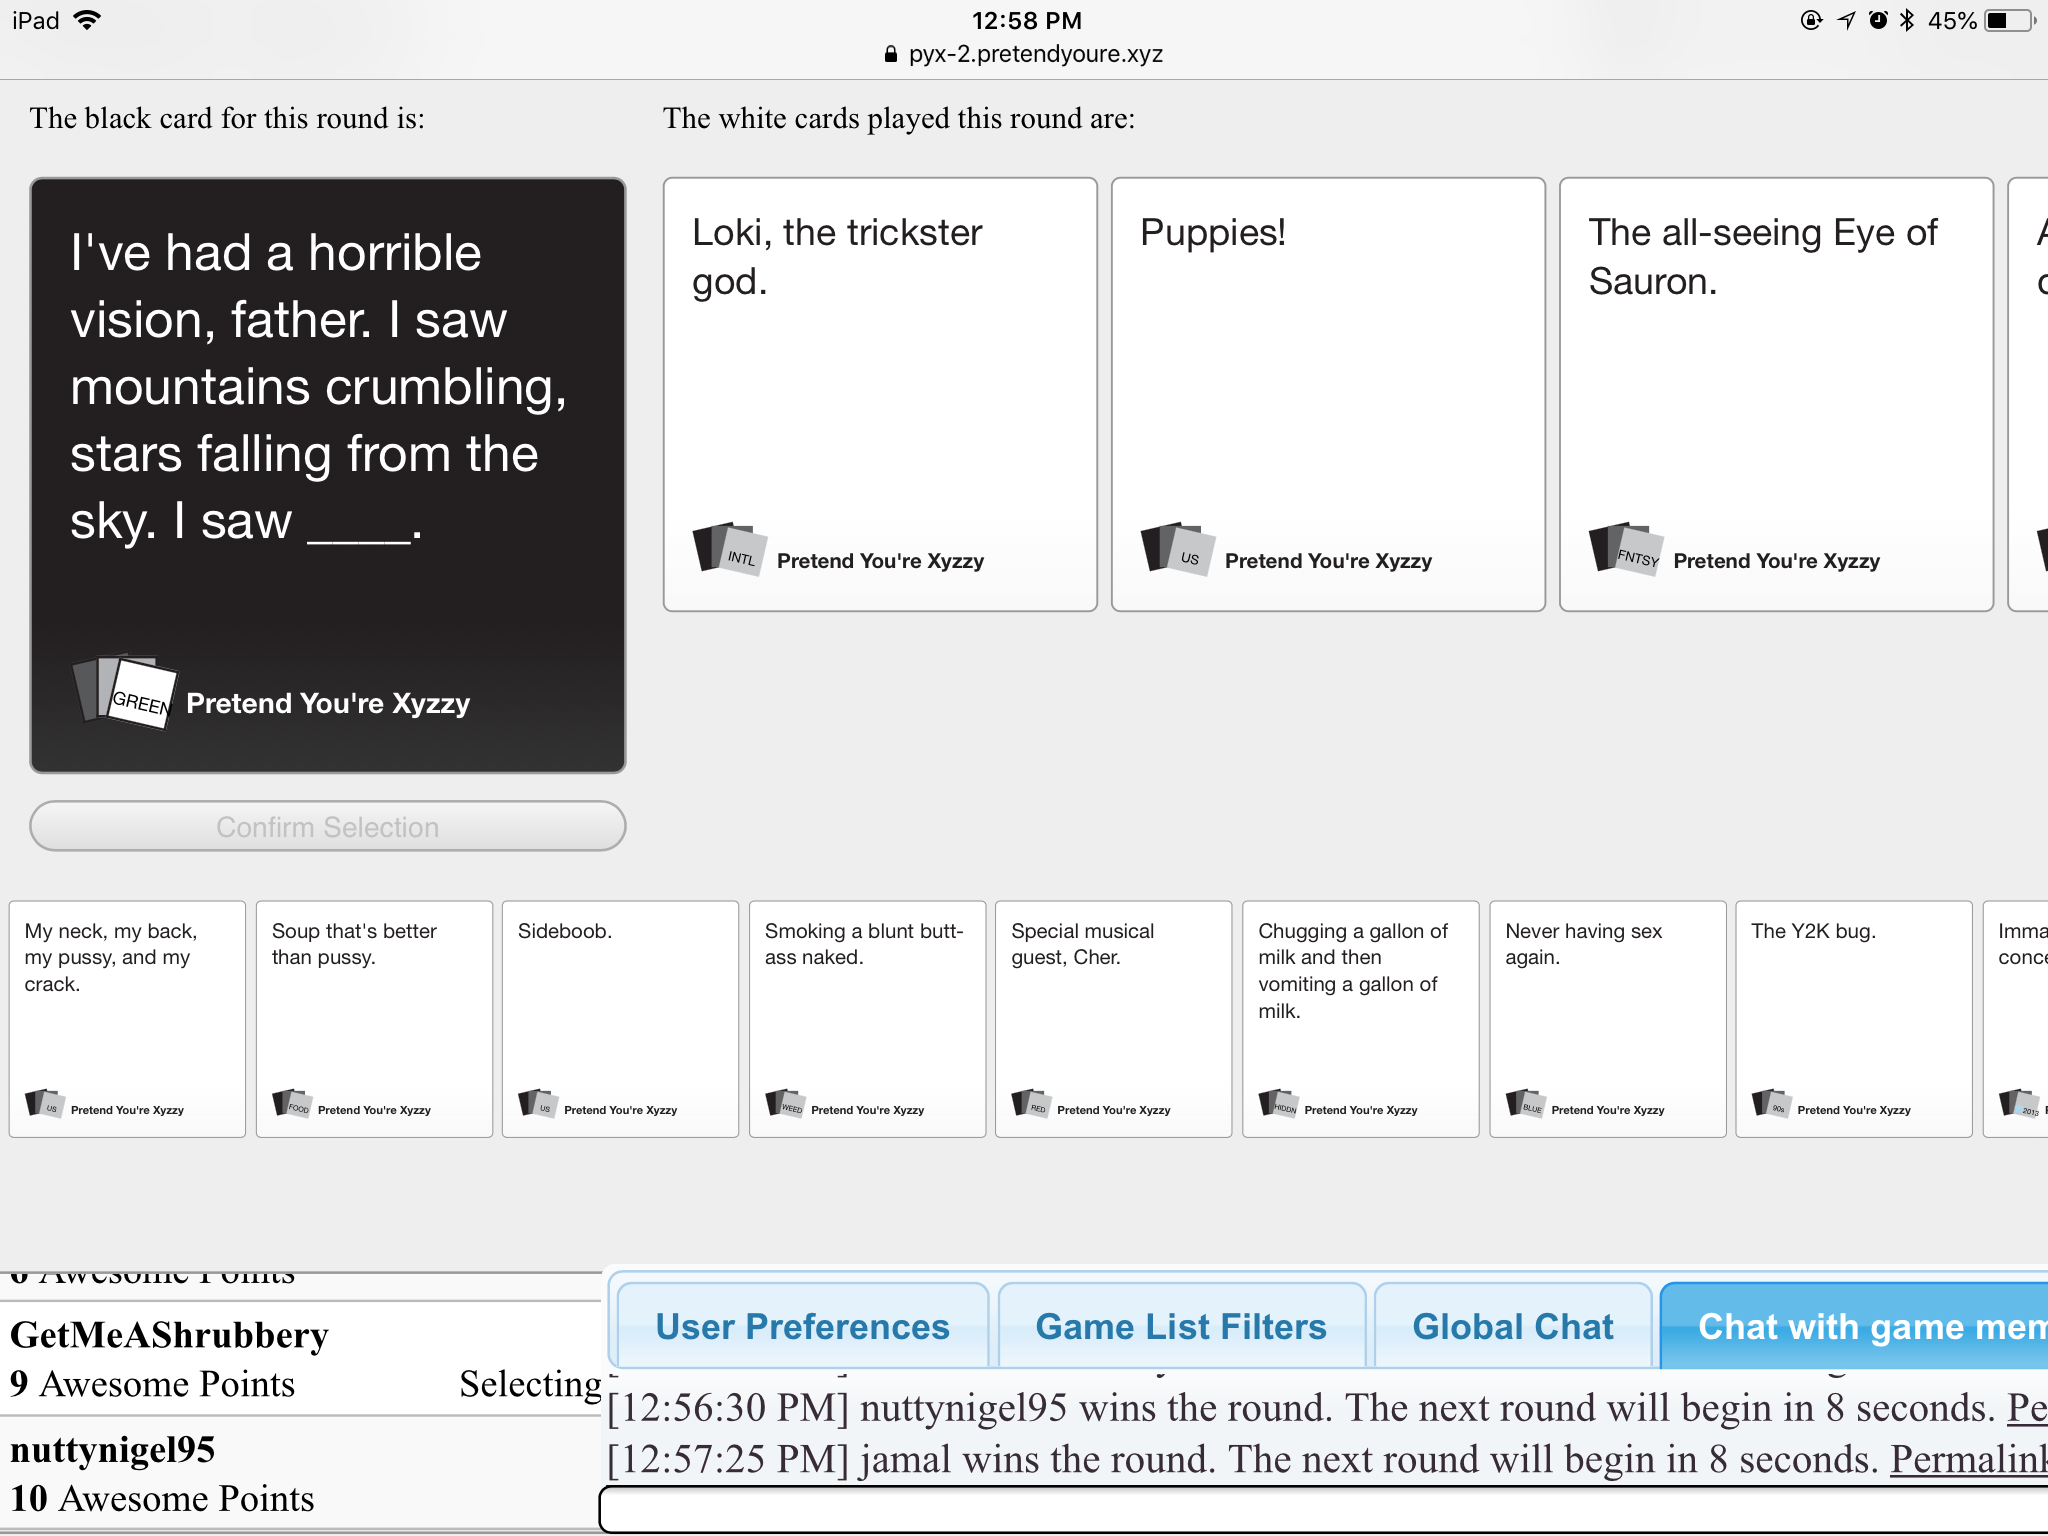 Pin By Megapixel98 On My Real Cards Against Humanity Games Humanity Game Black Card Cards Against Humanity